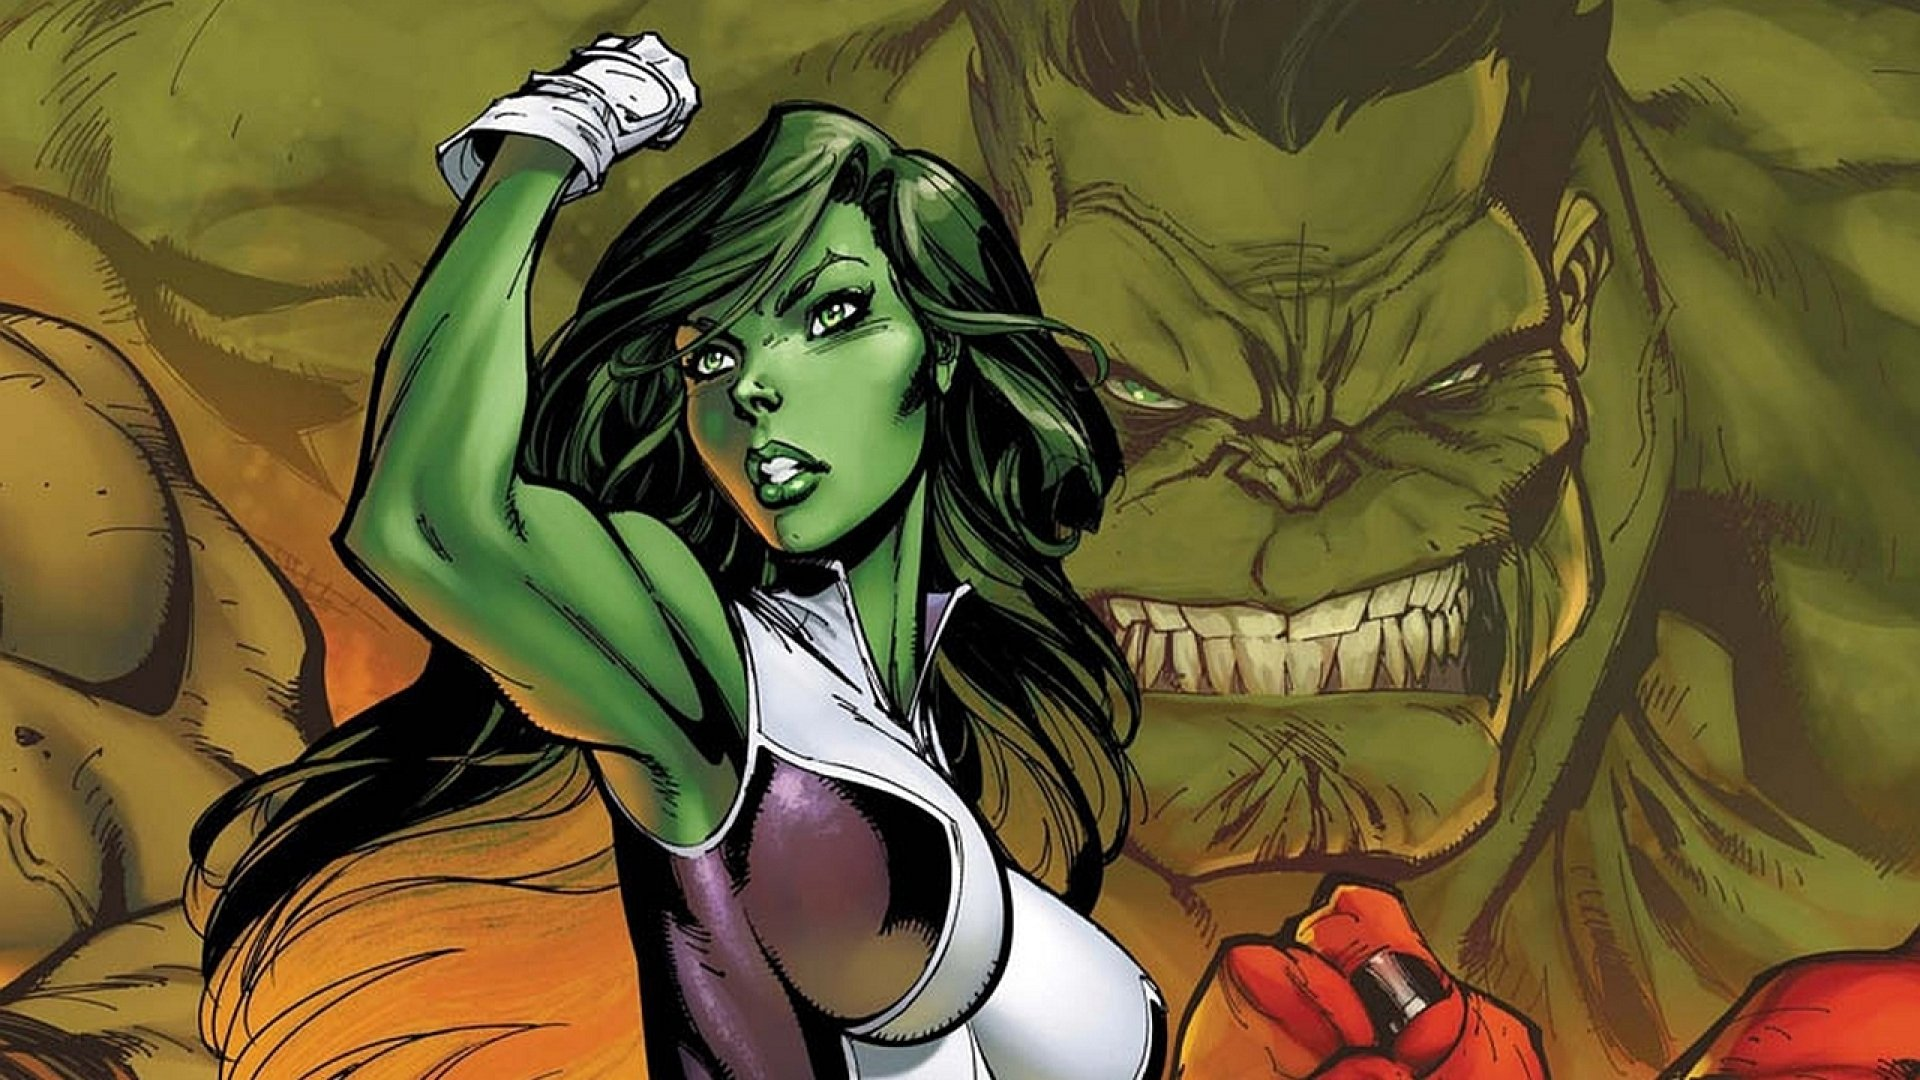 SHE HULK marvel comics superhero hulk she wallpaper 1920x1080